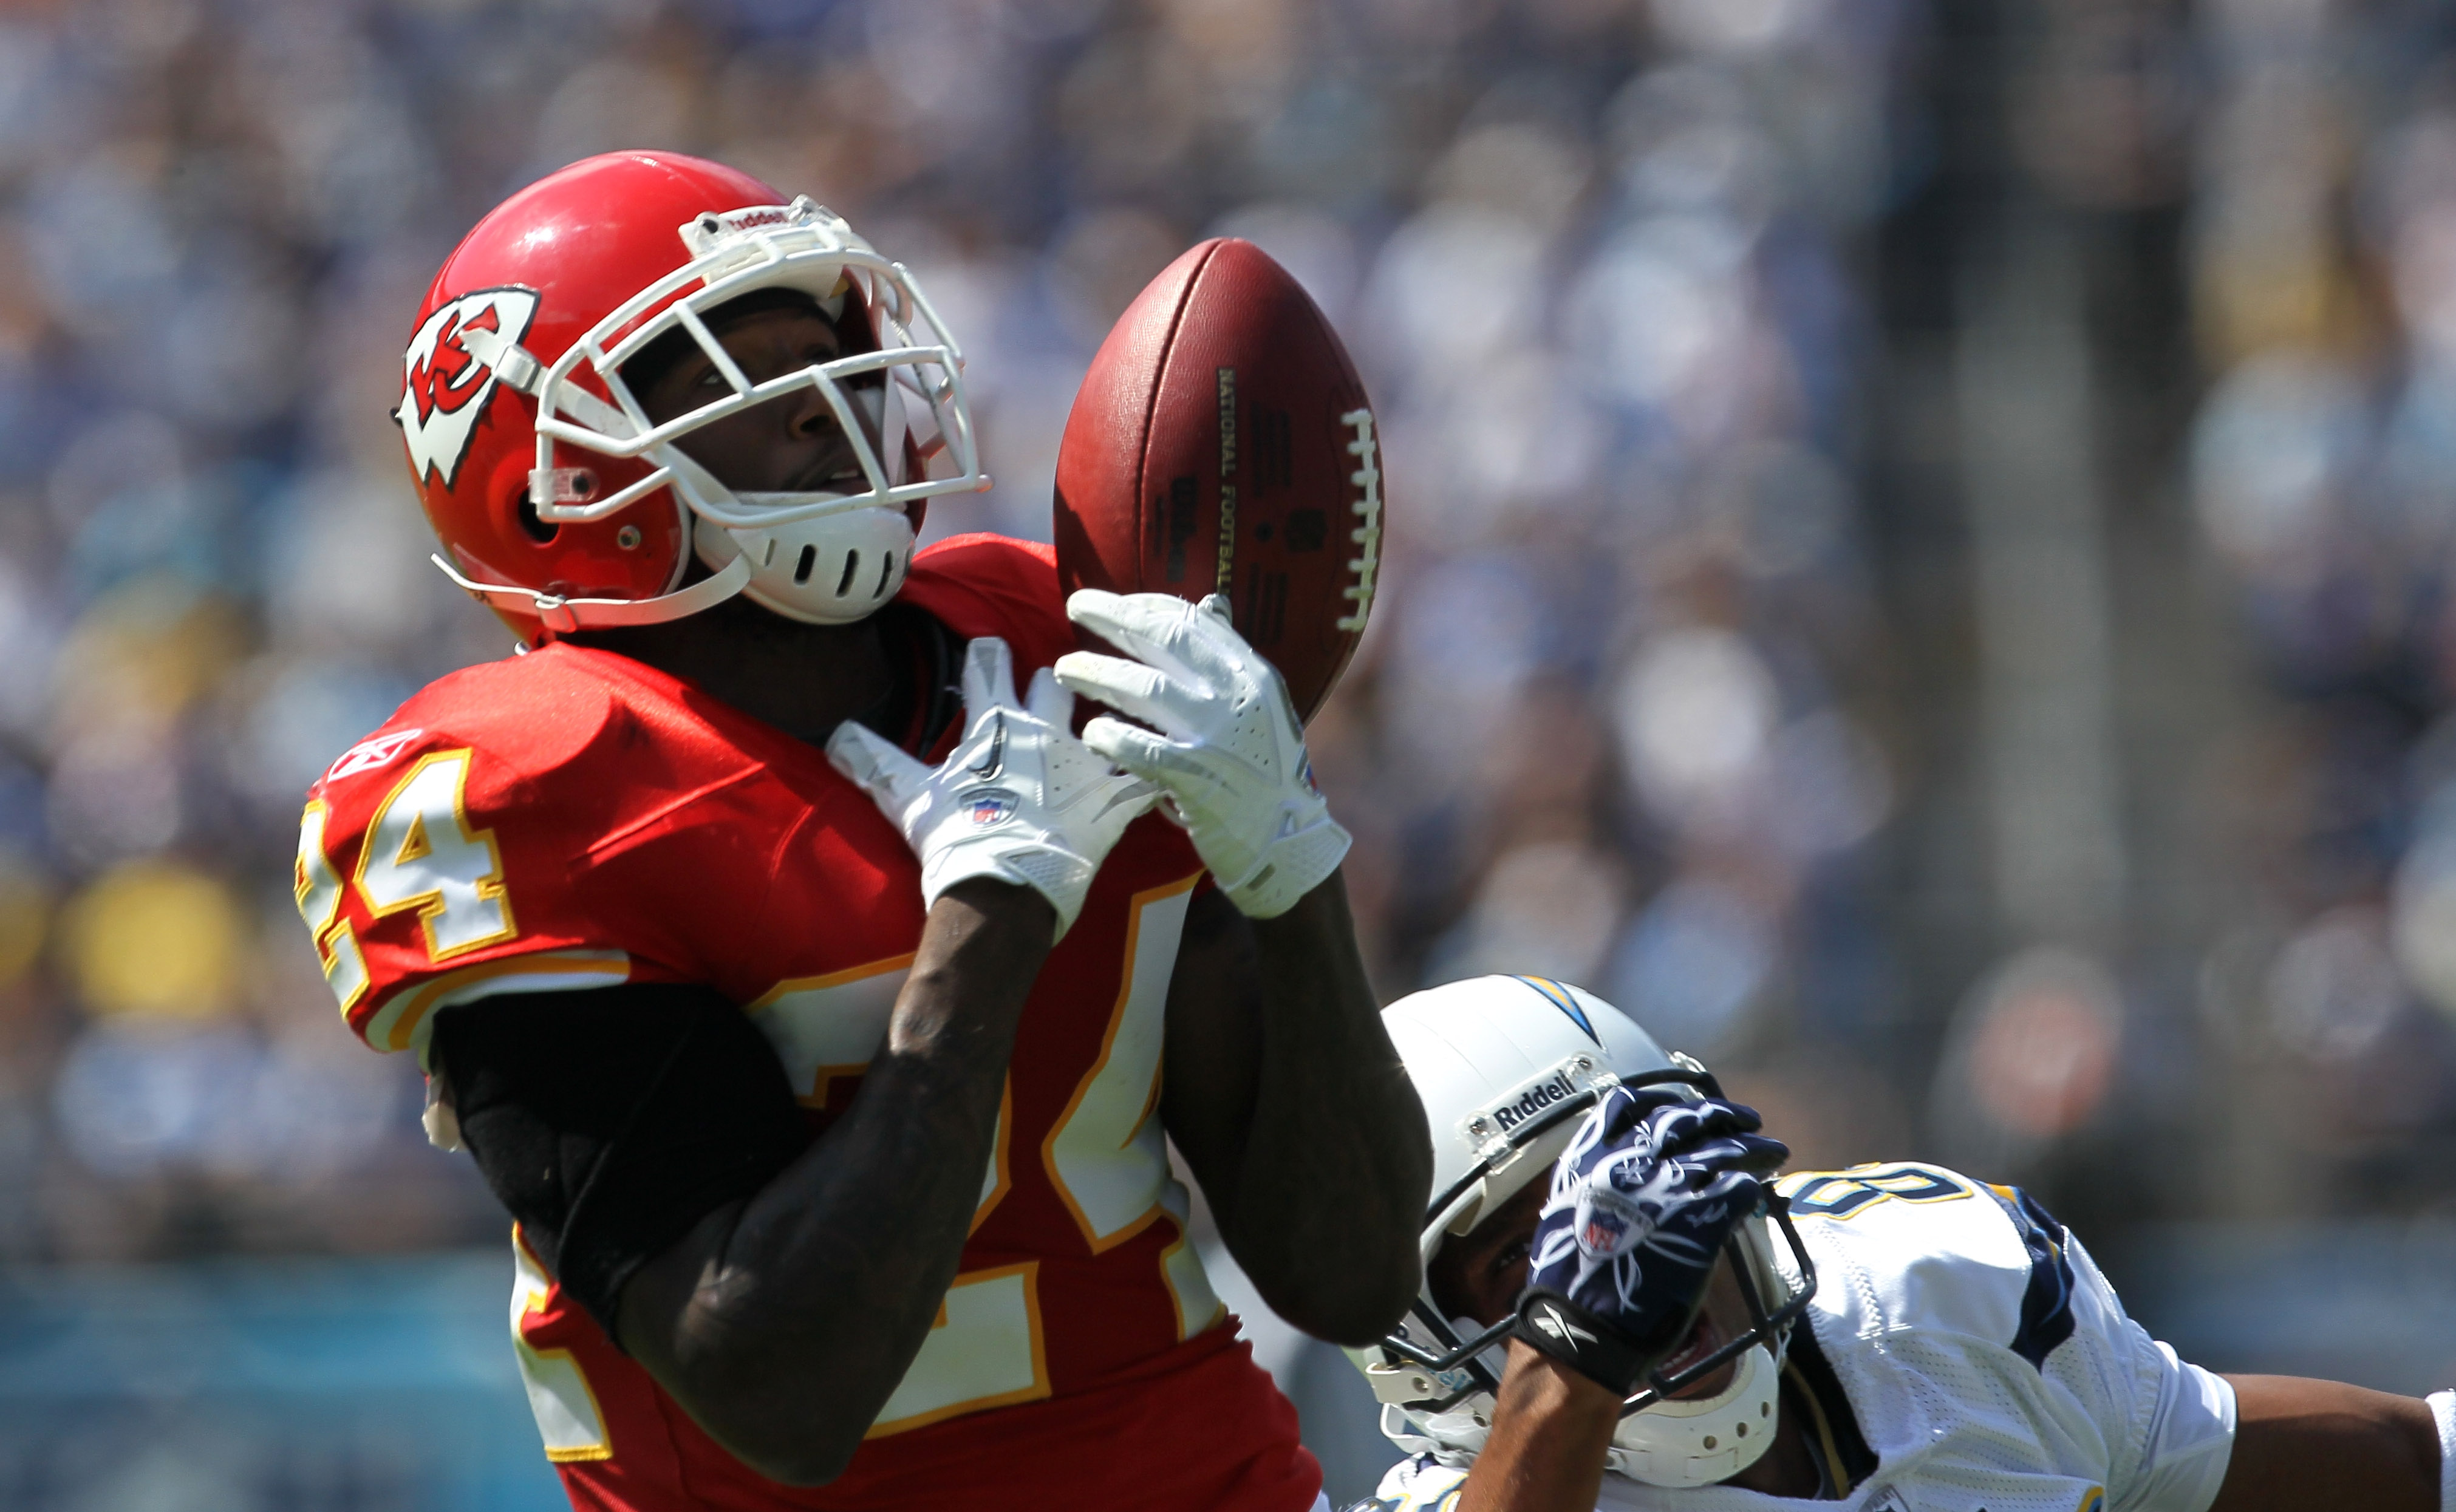 Brandon Flowers said he purposely stayed in the division to haunt the Chiefs.